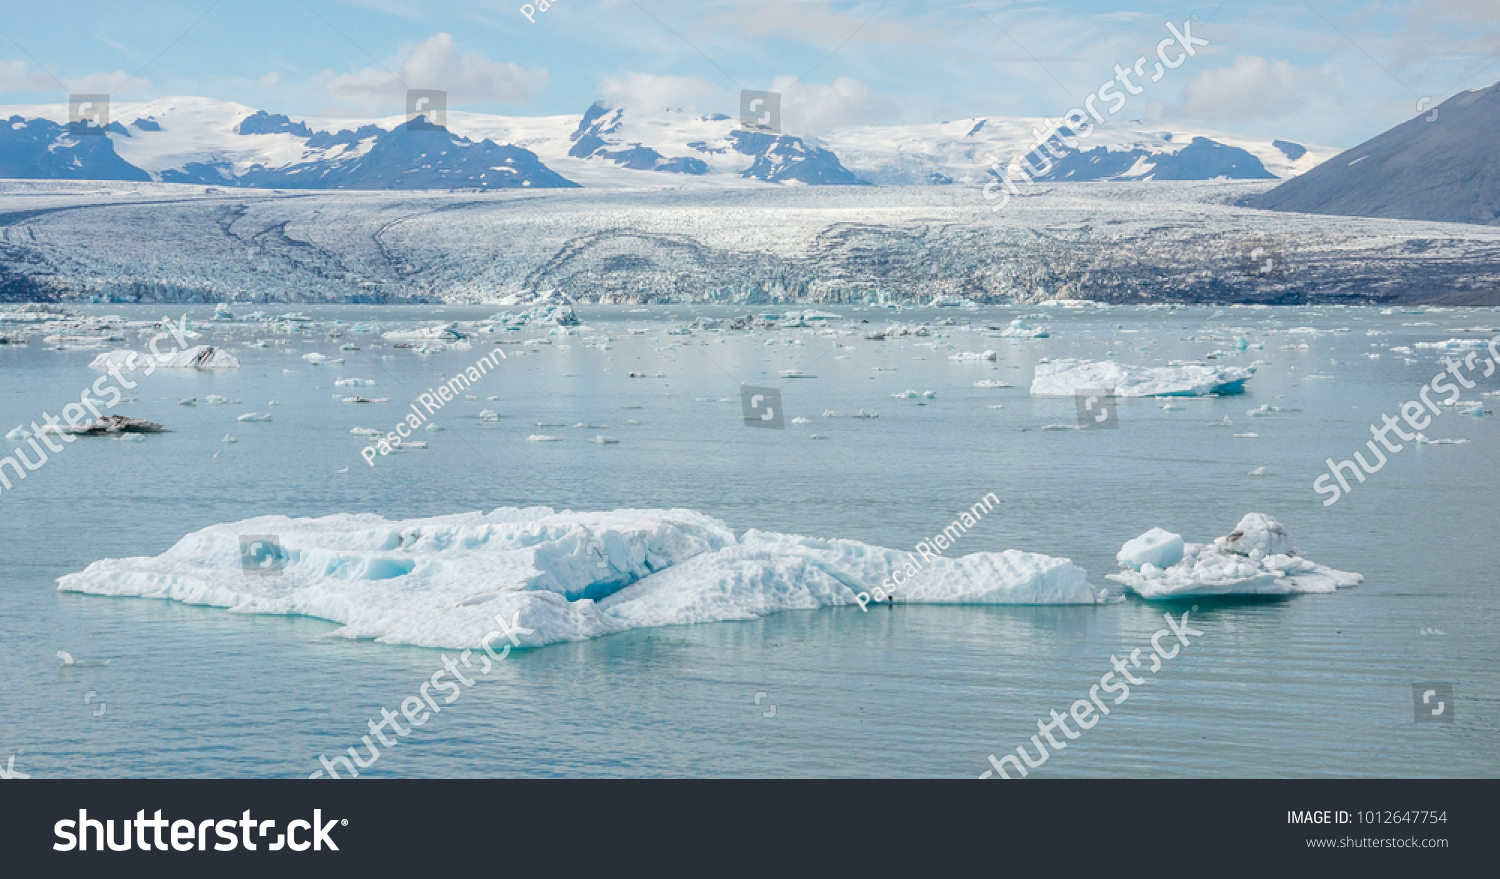 Panoramic view on the glacier lake Jokulsarlon in Iceland. In the background is the glacier, where the icebergs break off. #1012647754